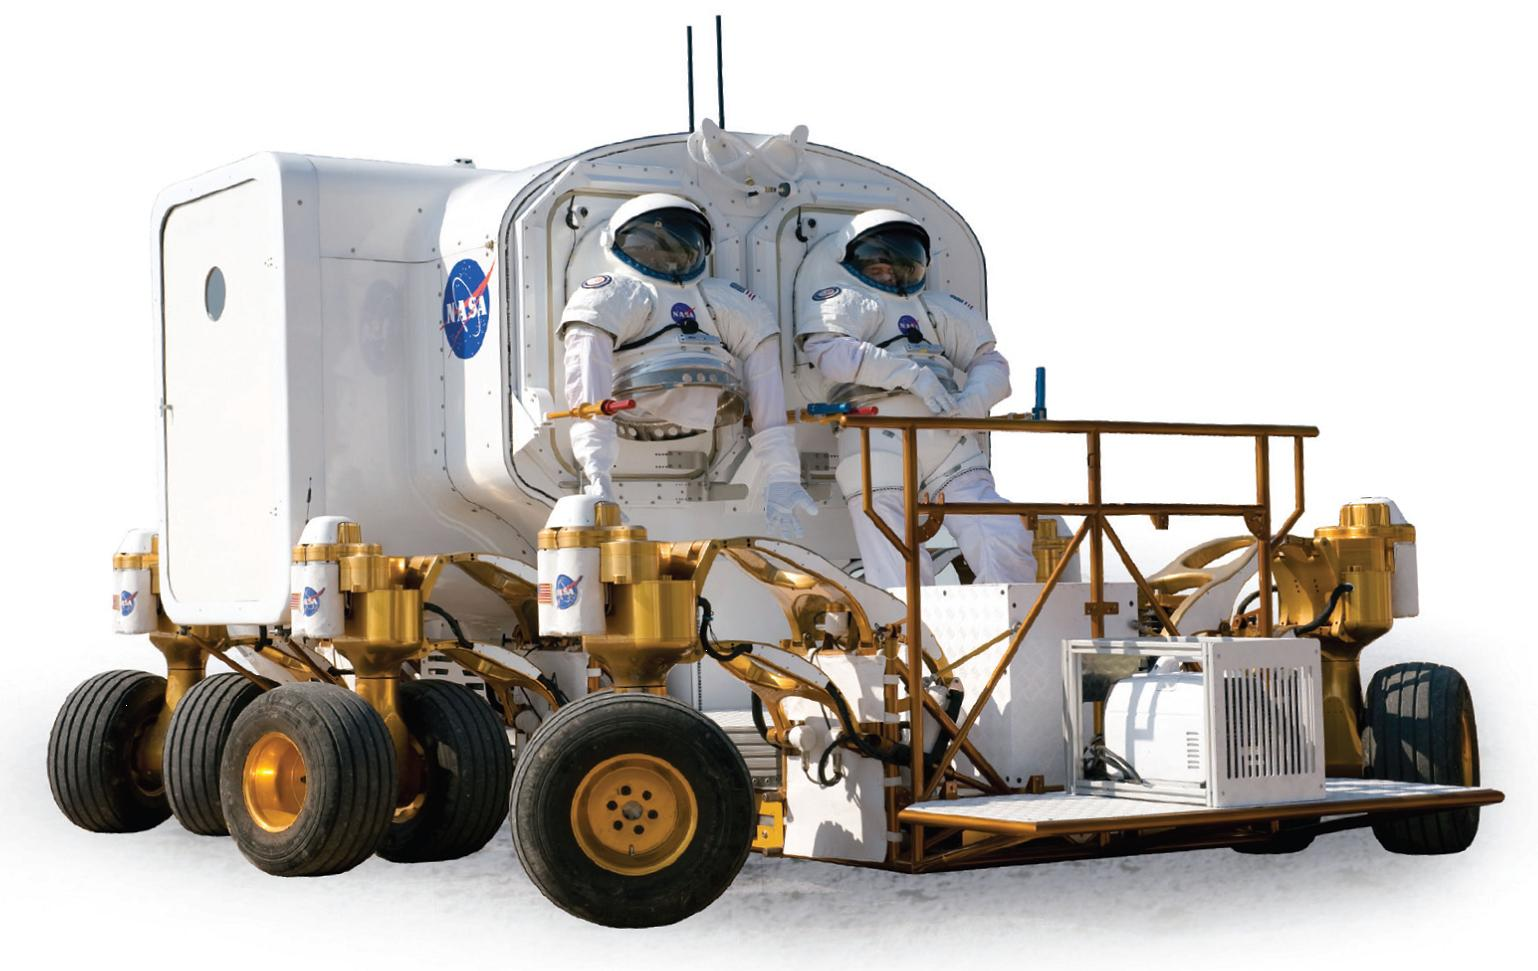 NASA Facts Constellation Orion Crew Exploration Vehicle